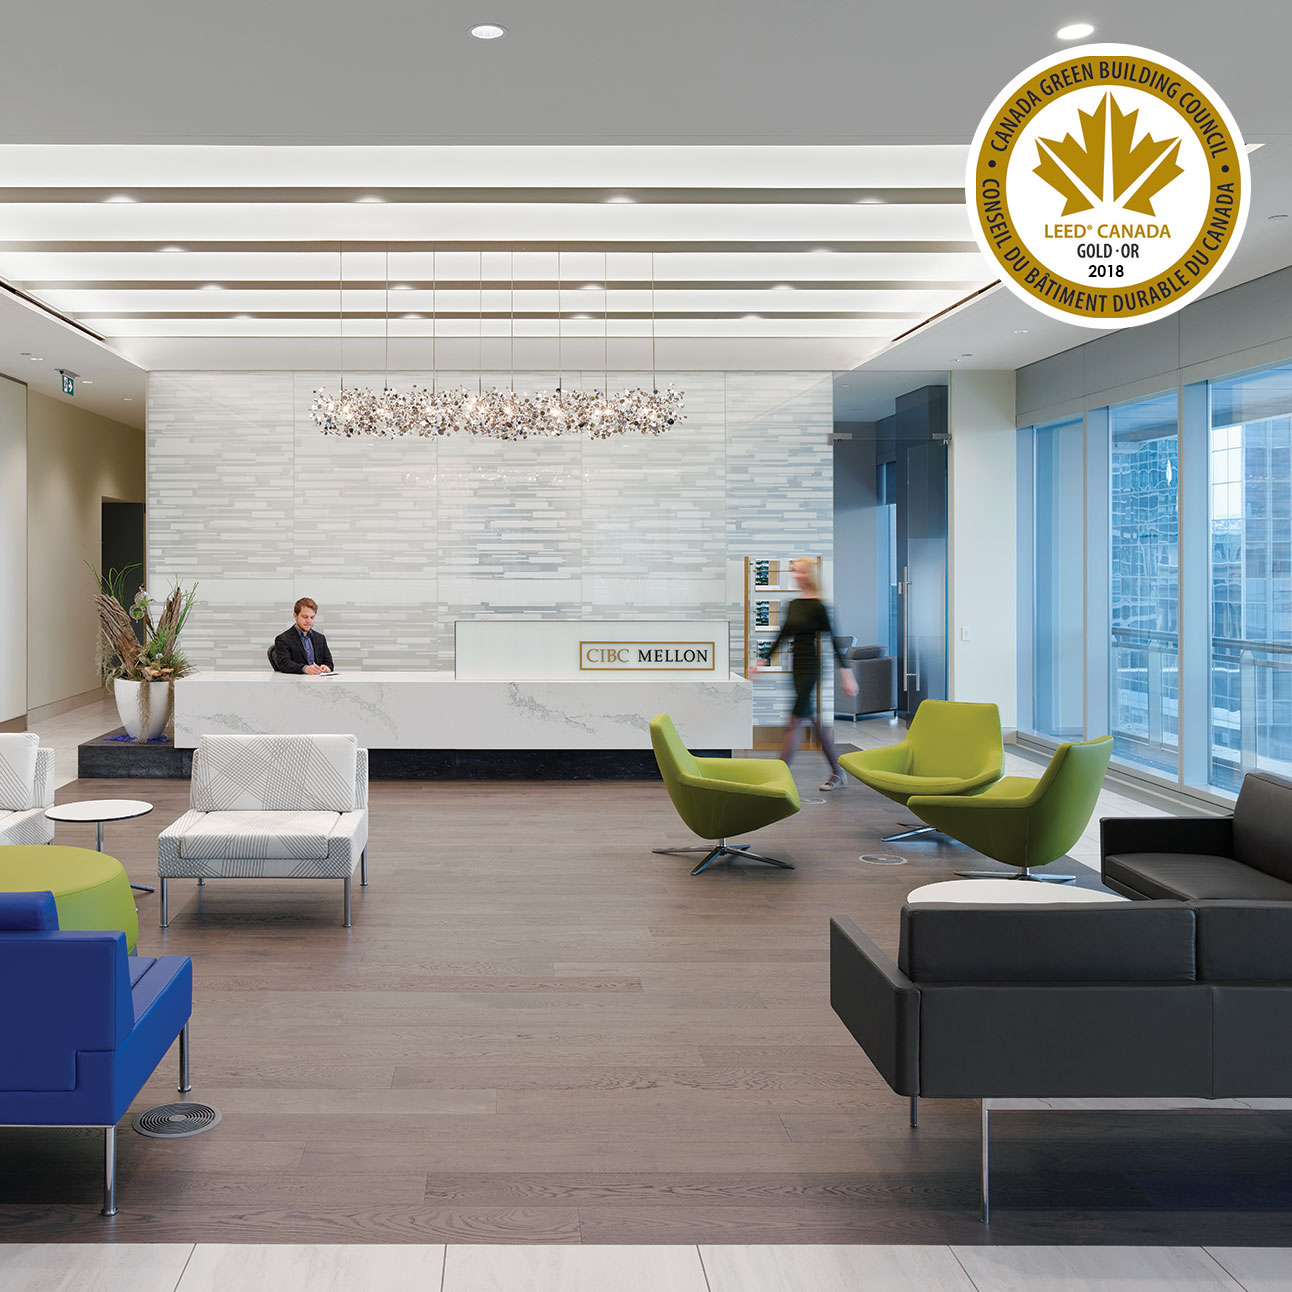 CIBC Mellon 1 York Street Receives LEED Gold Certification